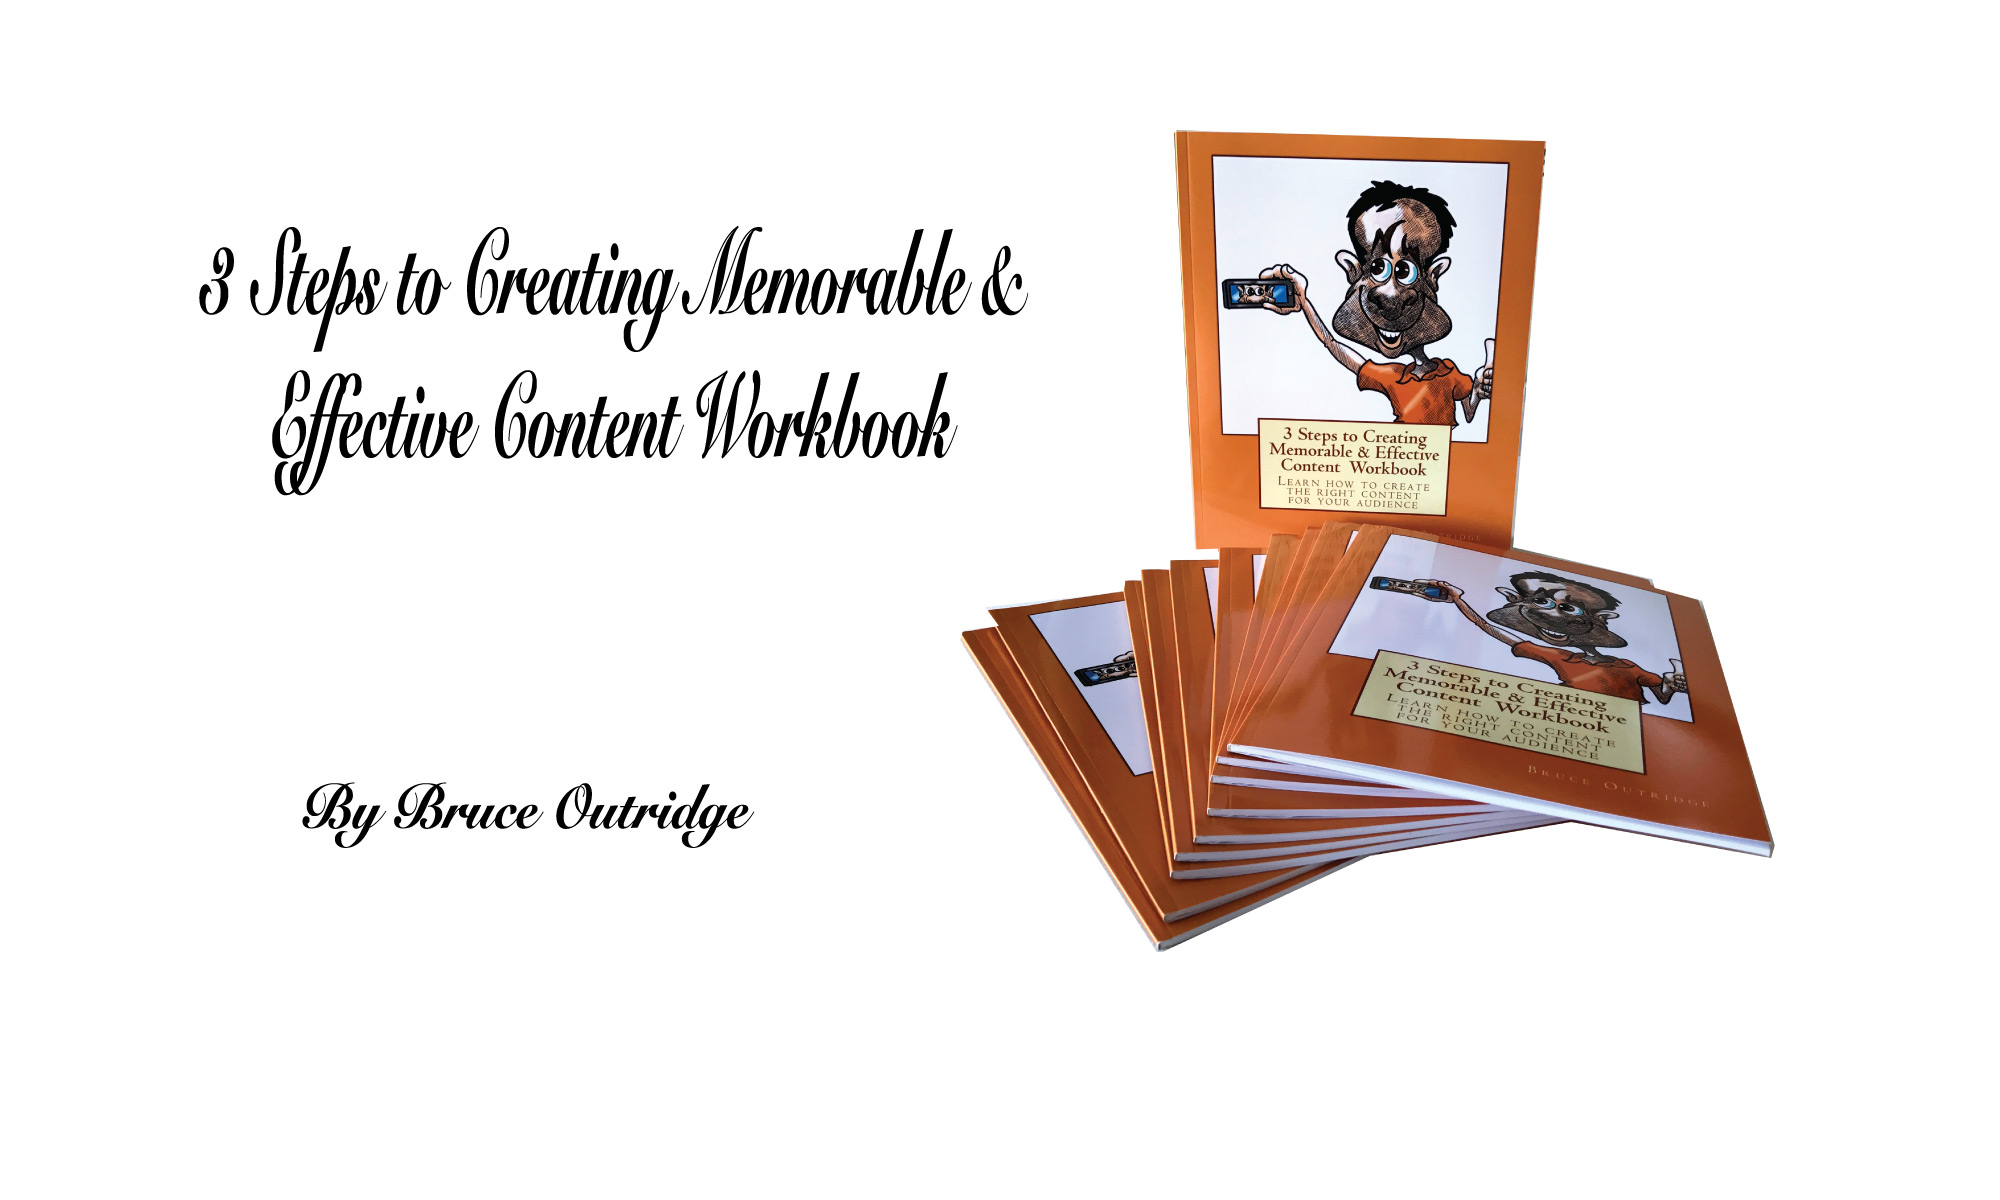 3 Steps to Creating Memorabe & Effective Content Workbook